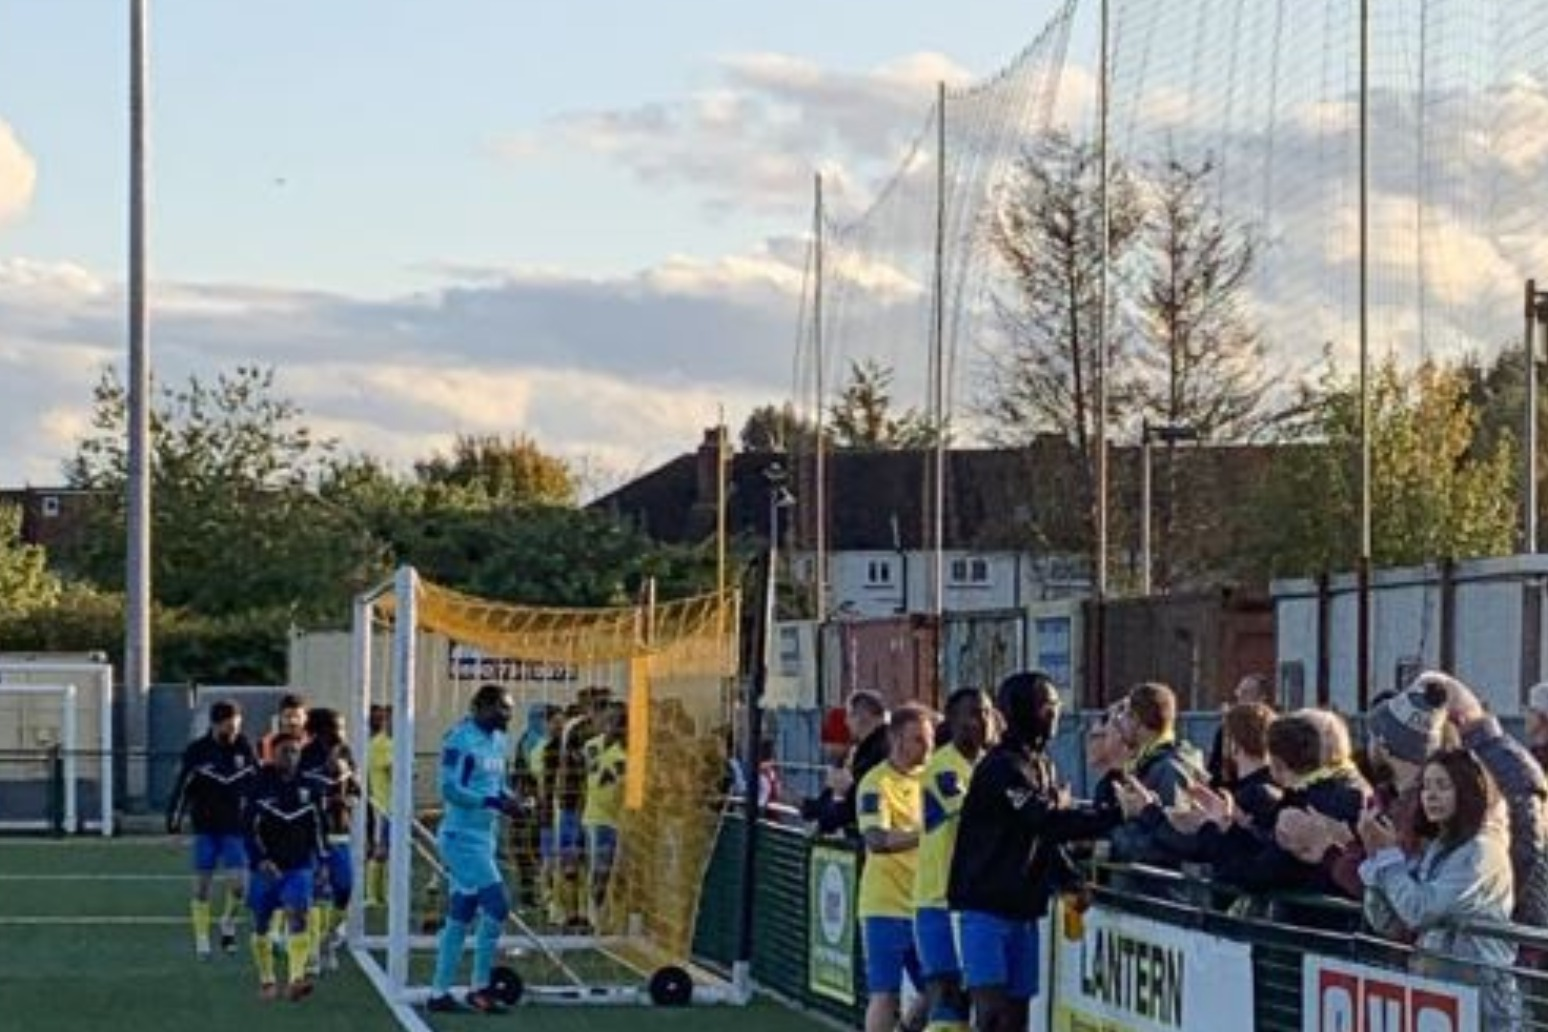 HARINGEY BOSS PULLED \'FRIGHTENED\' PLAYERS OFF PITCH AFTER RACIST ABUSE